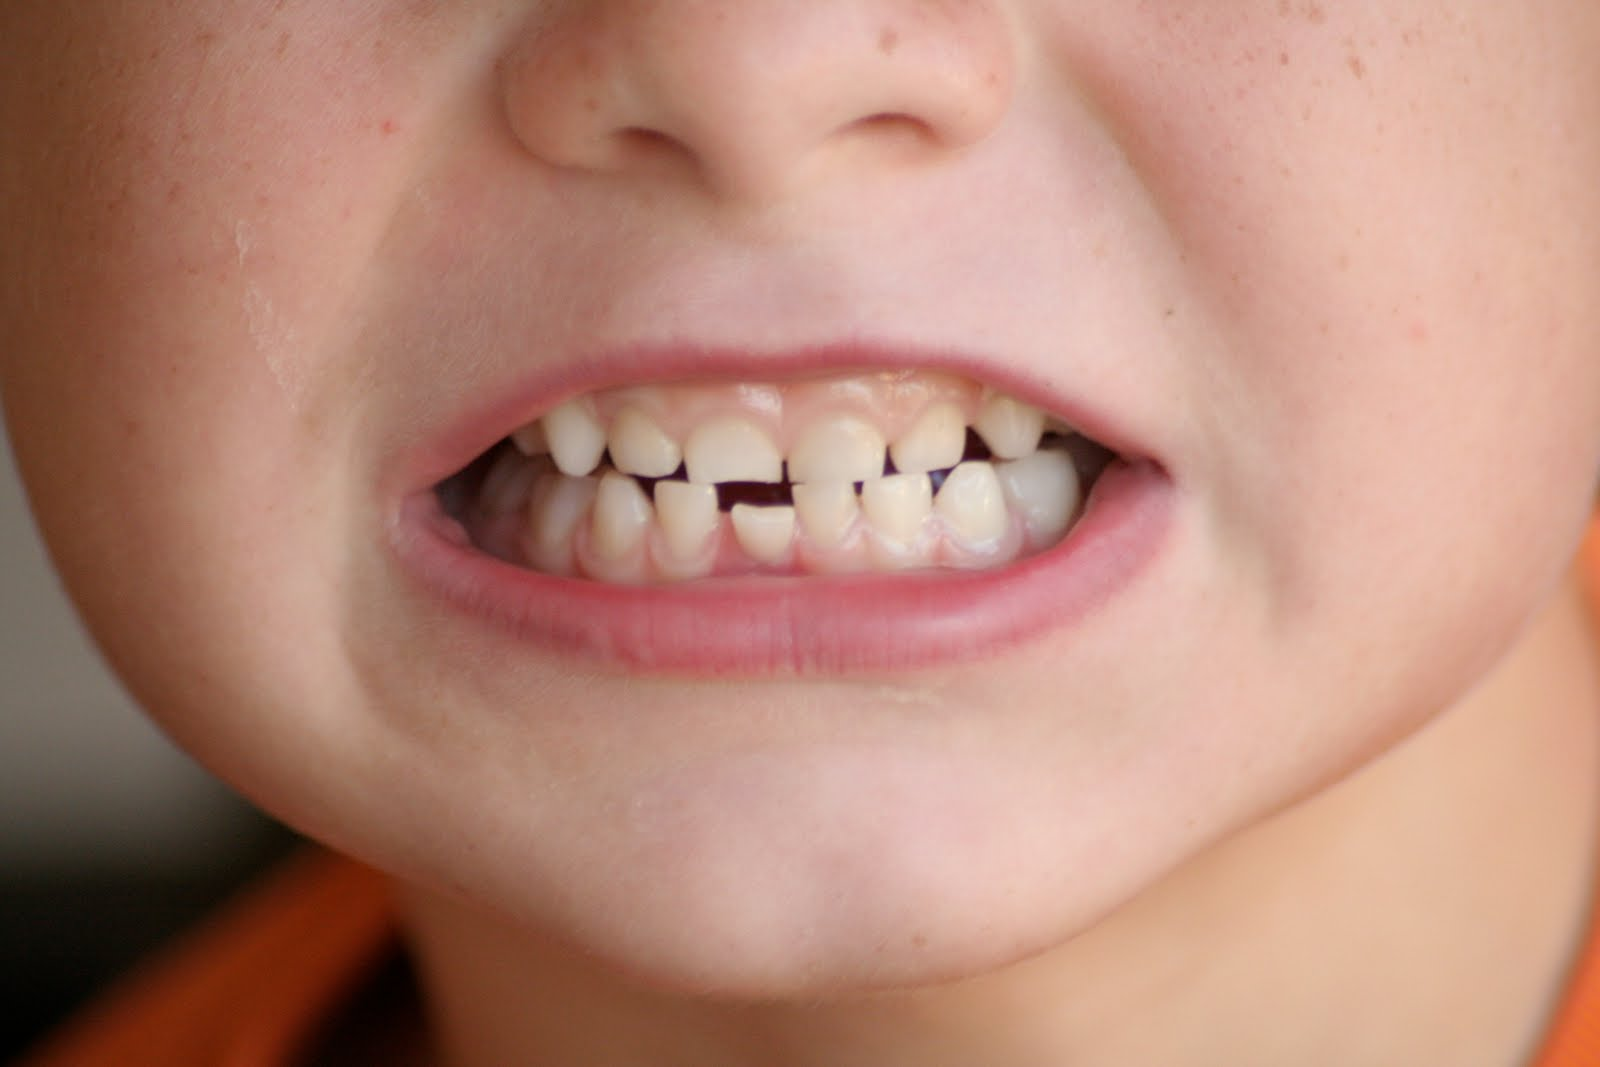 Taysoms in the News: Loose Tooth